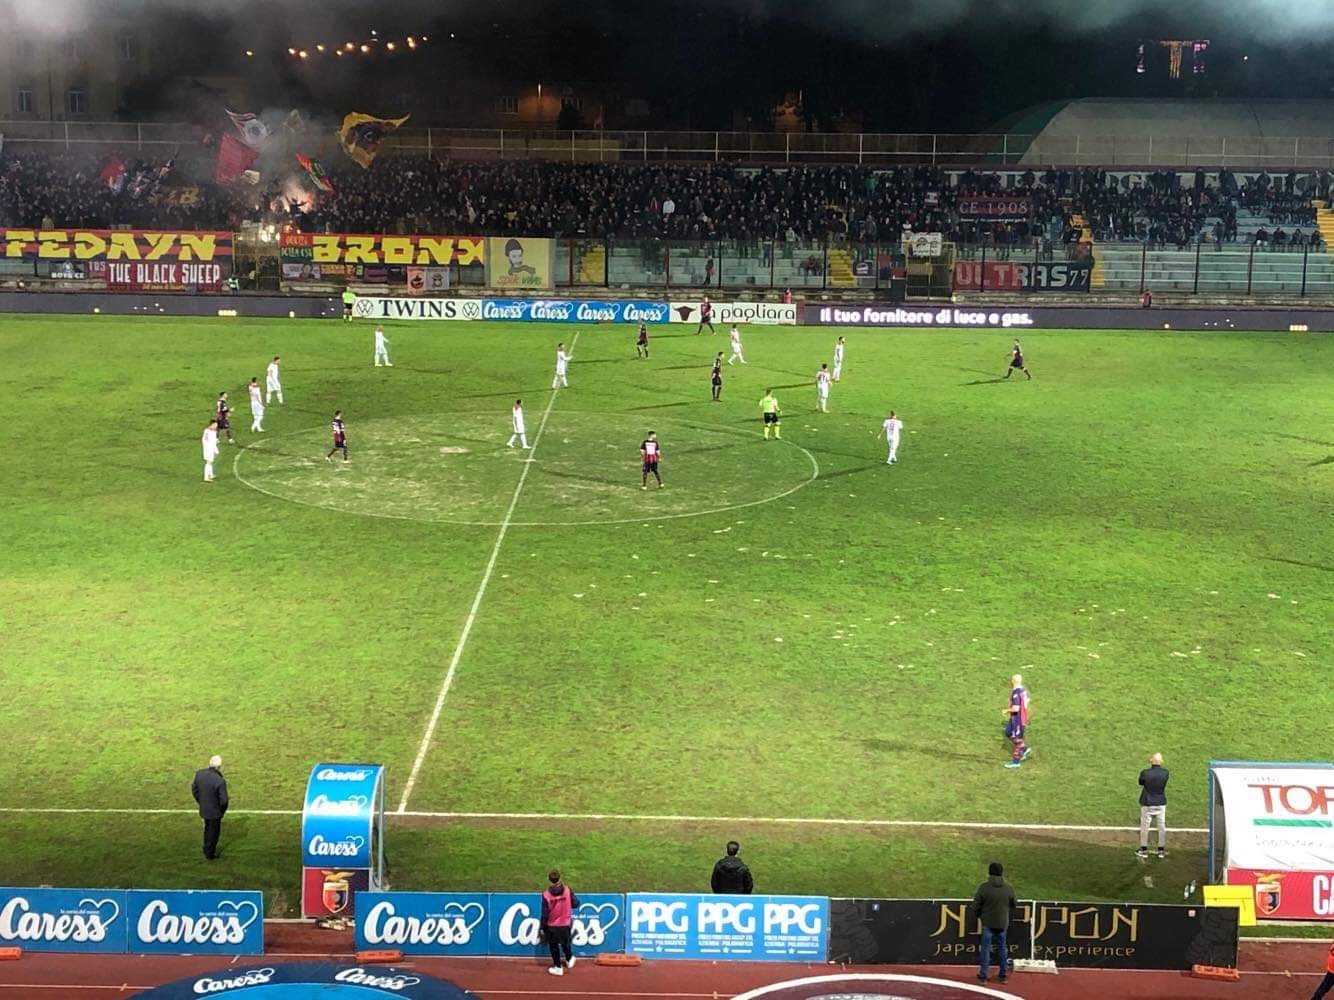 Photo of Troppo Bari per la Casertana, i galletti espugnano il Pinto per 3-0: partita super di Antenucci